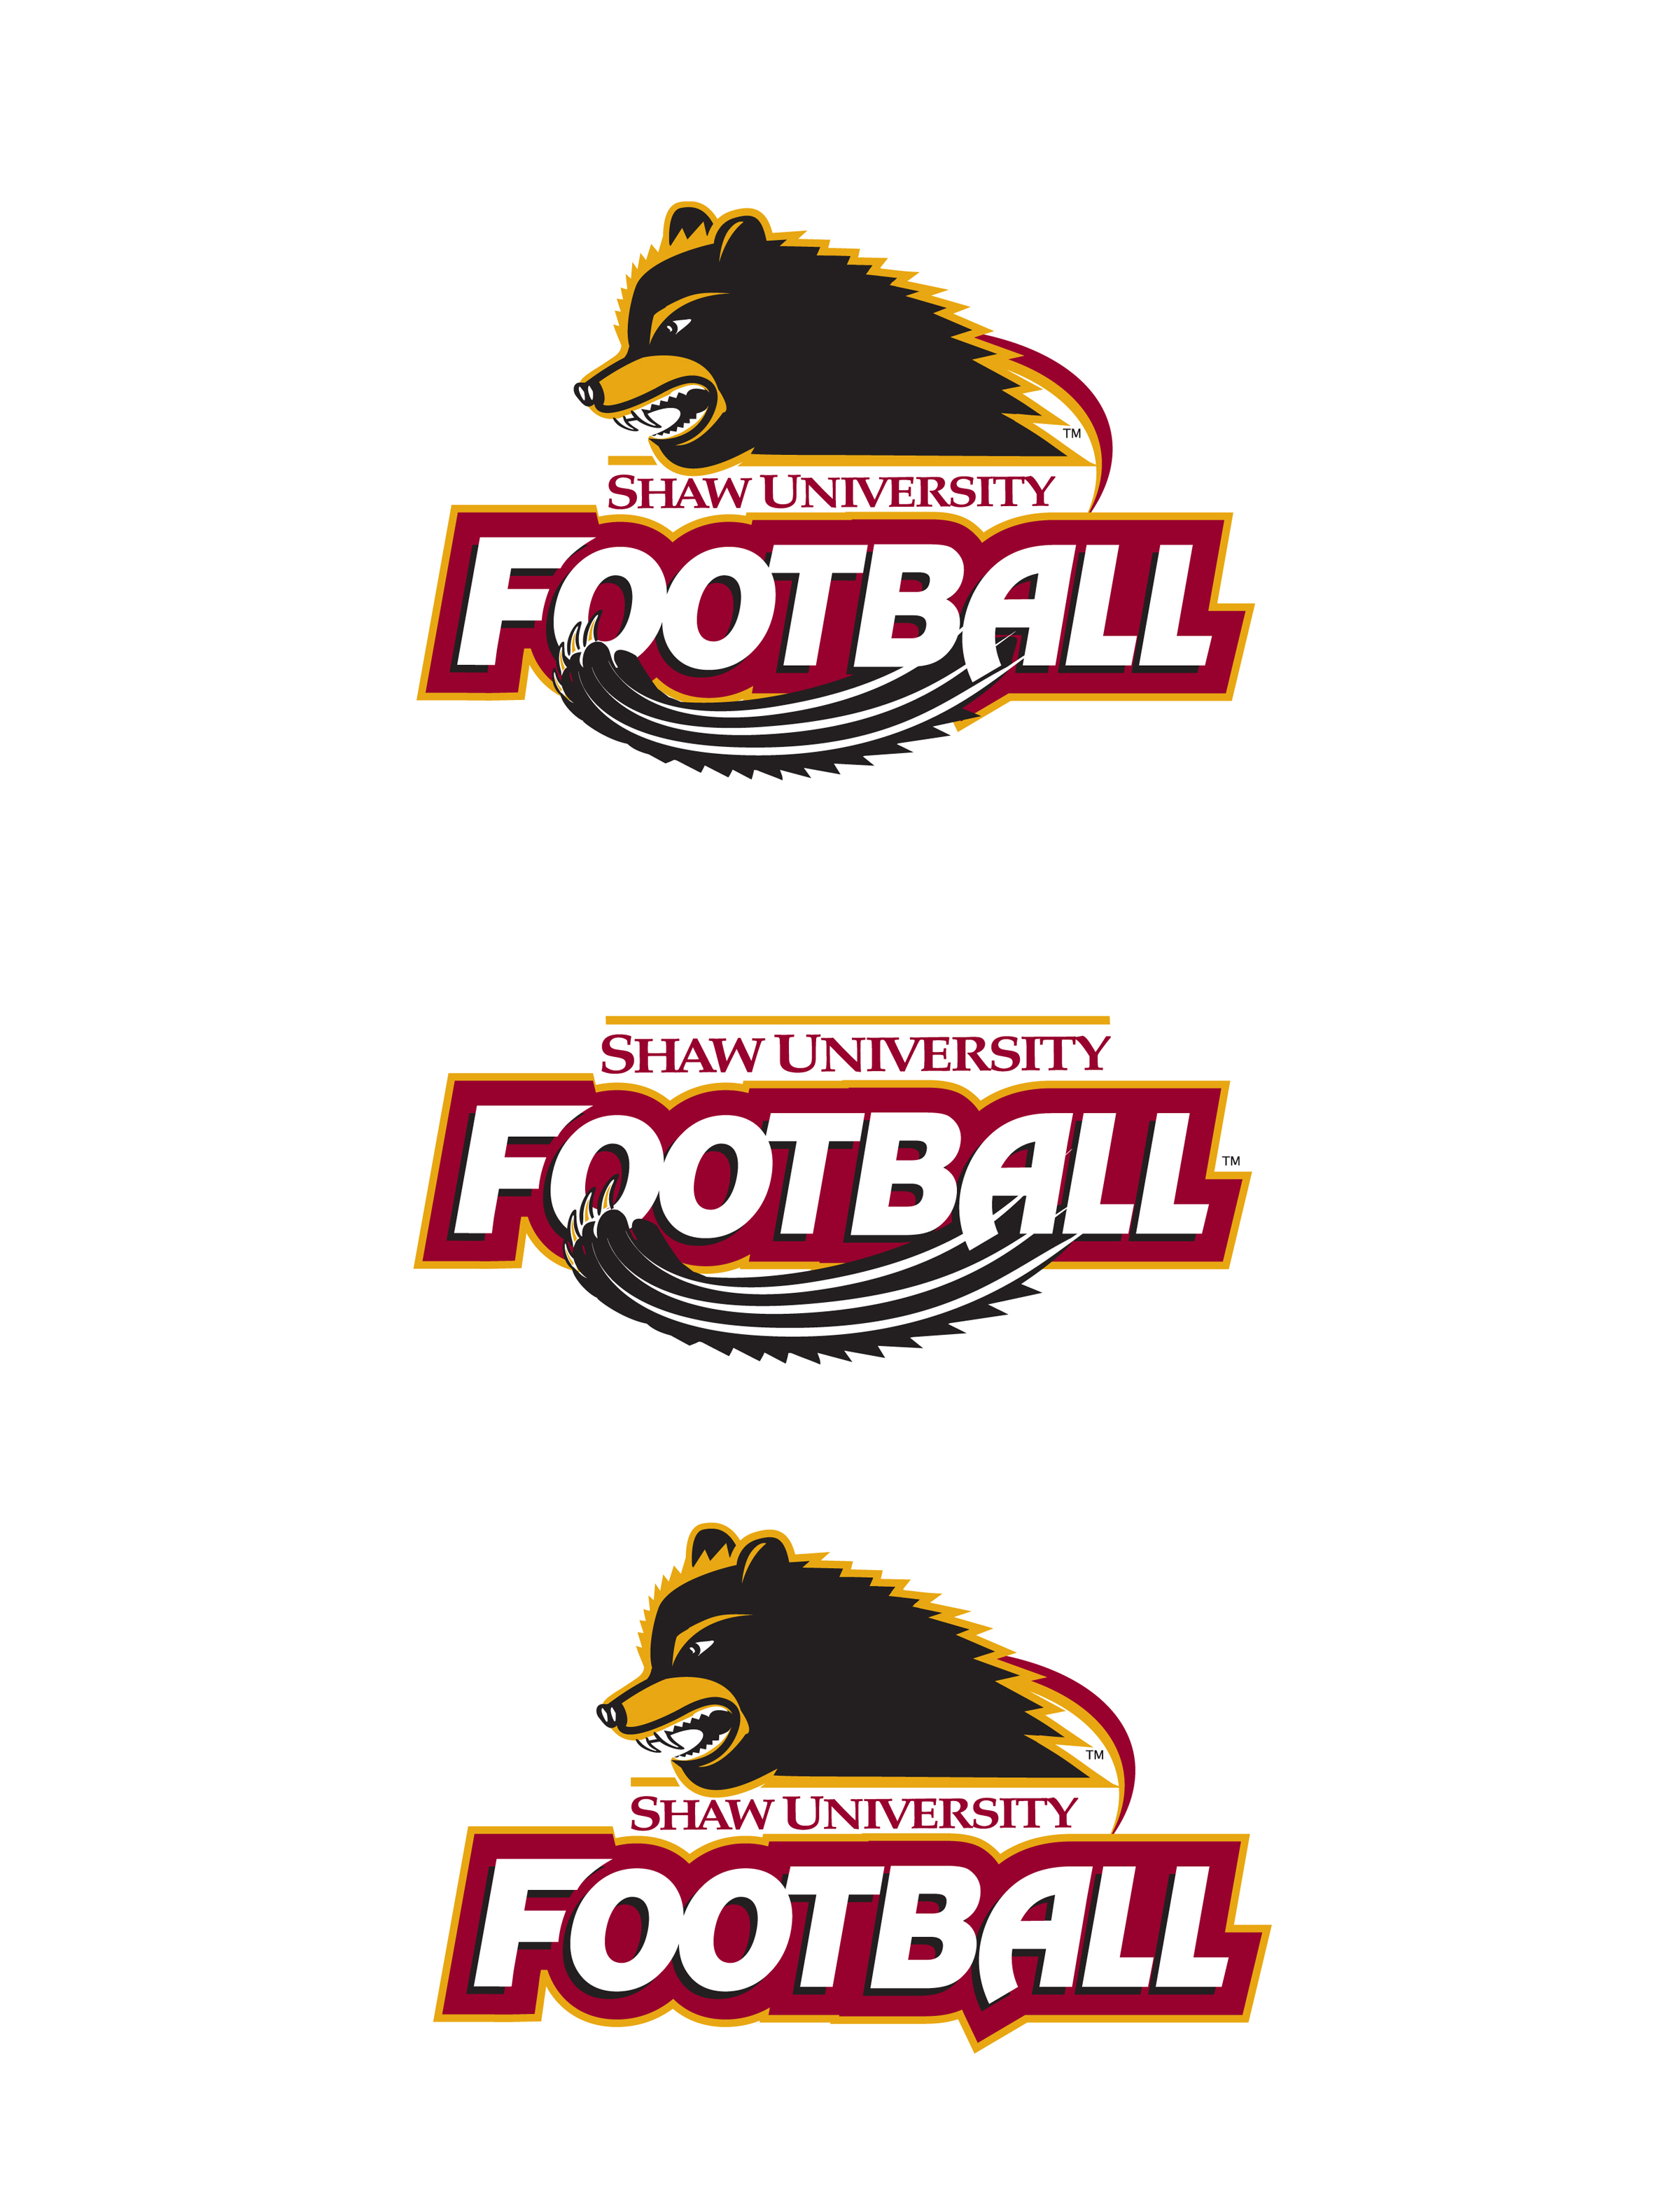 Shaw University athletic logo - football - designed by vitalink